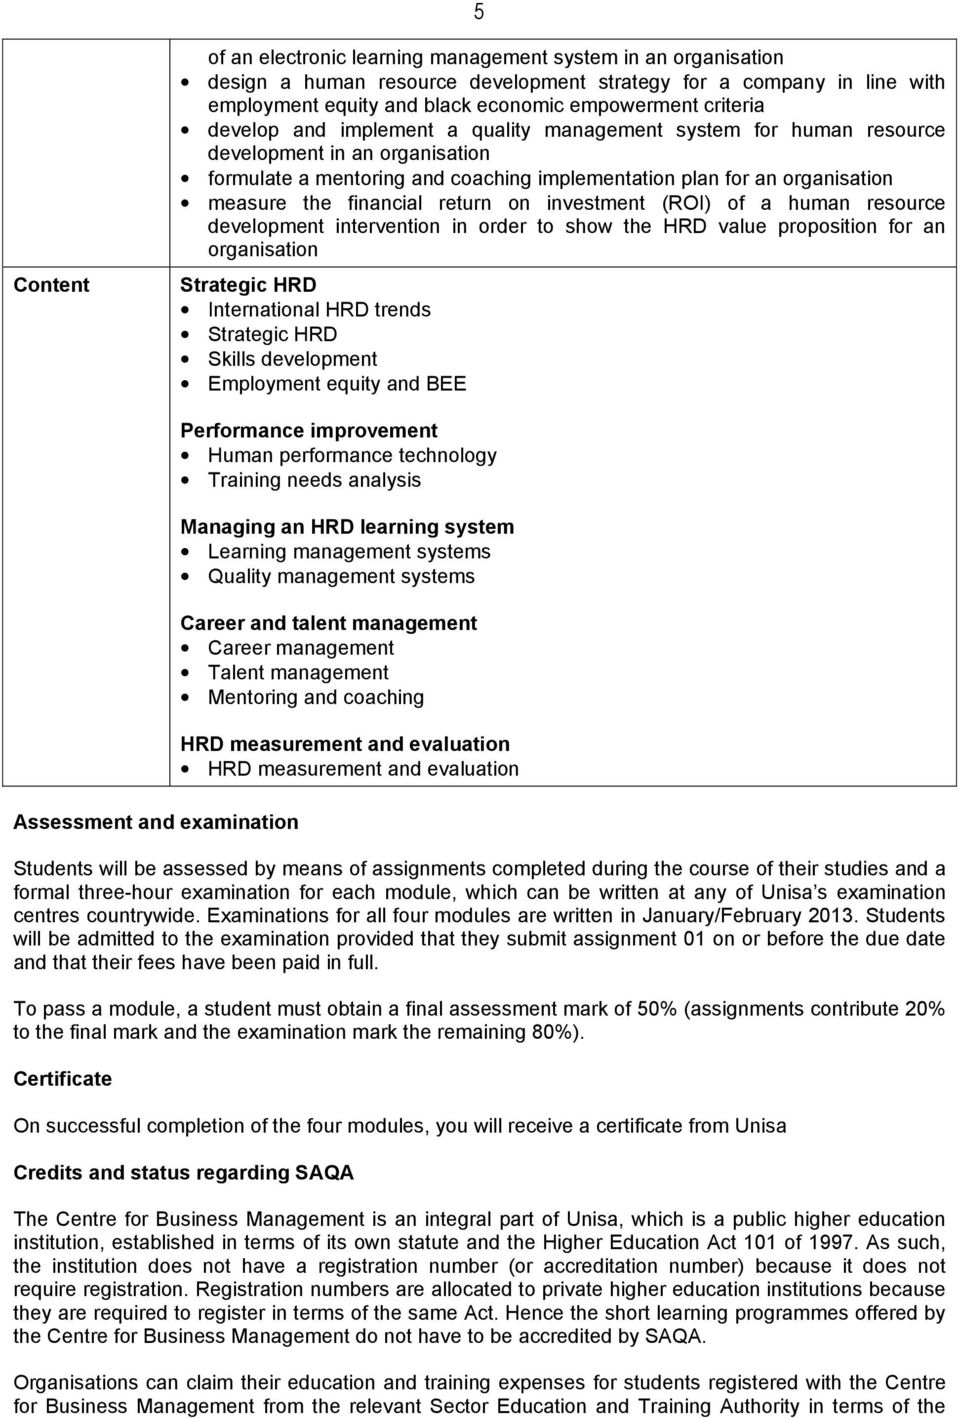 Advanced Programme In Human Resource Management Qualification Code